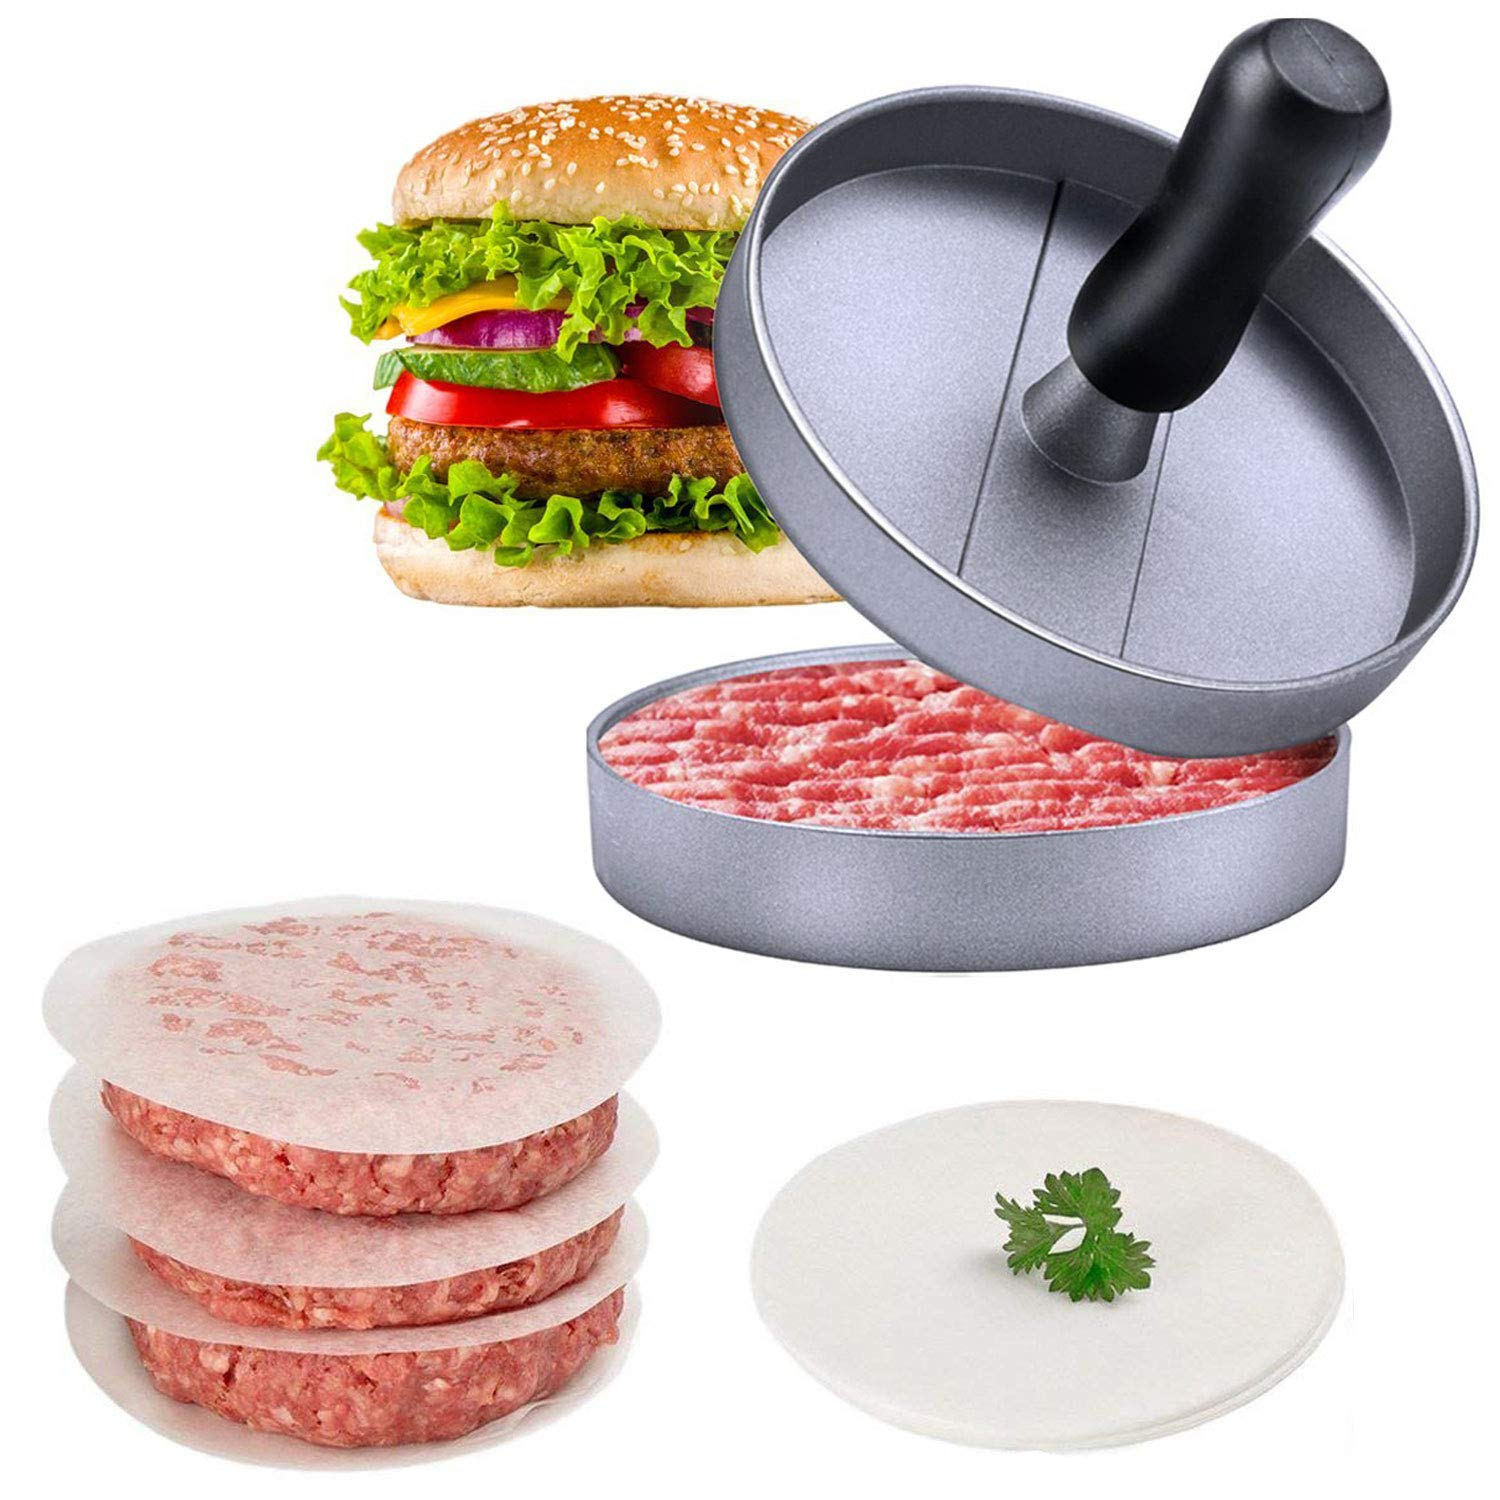 Burger Press for Making Perfect Hamburger Patties | Homemade Aluminum Patty Maker Quarter Pounder with Bonus - 150 Free Non-Stick Wax Discs MEGON